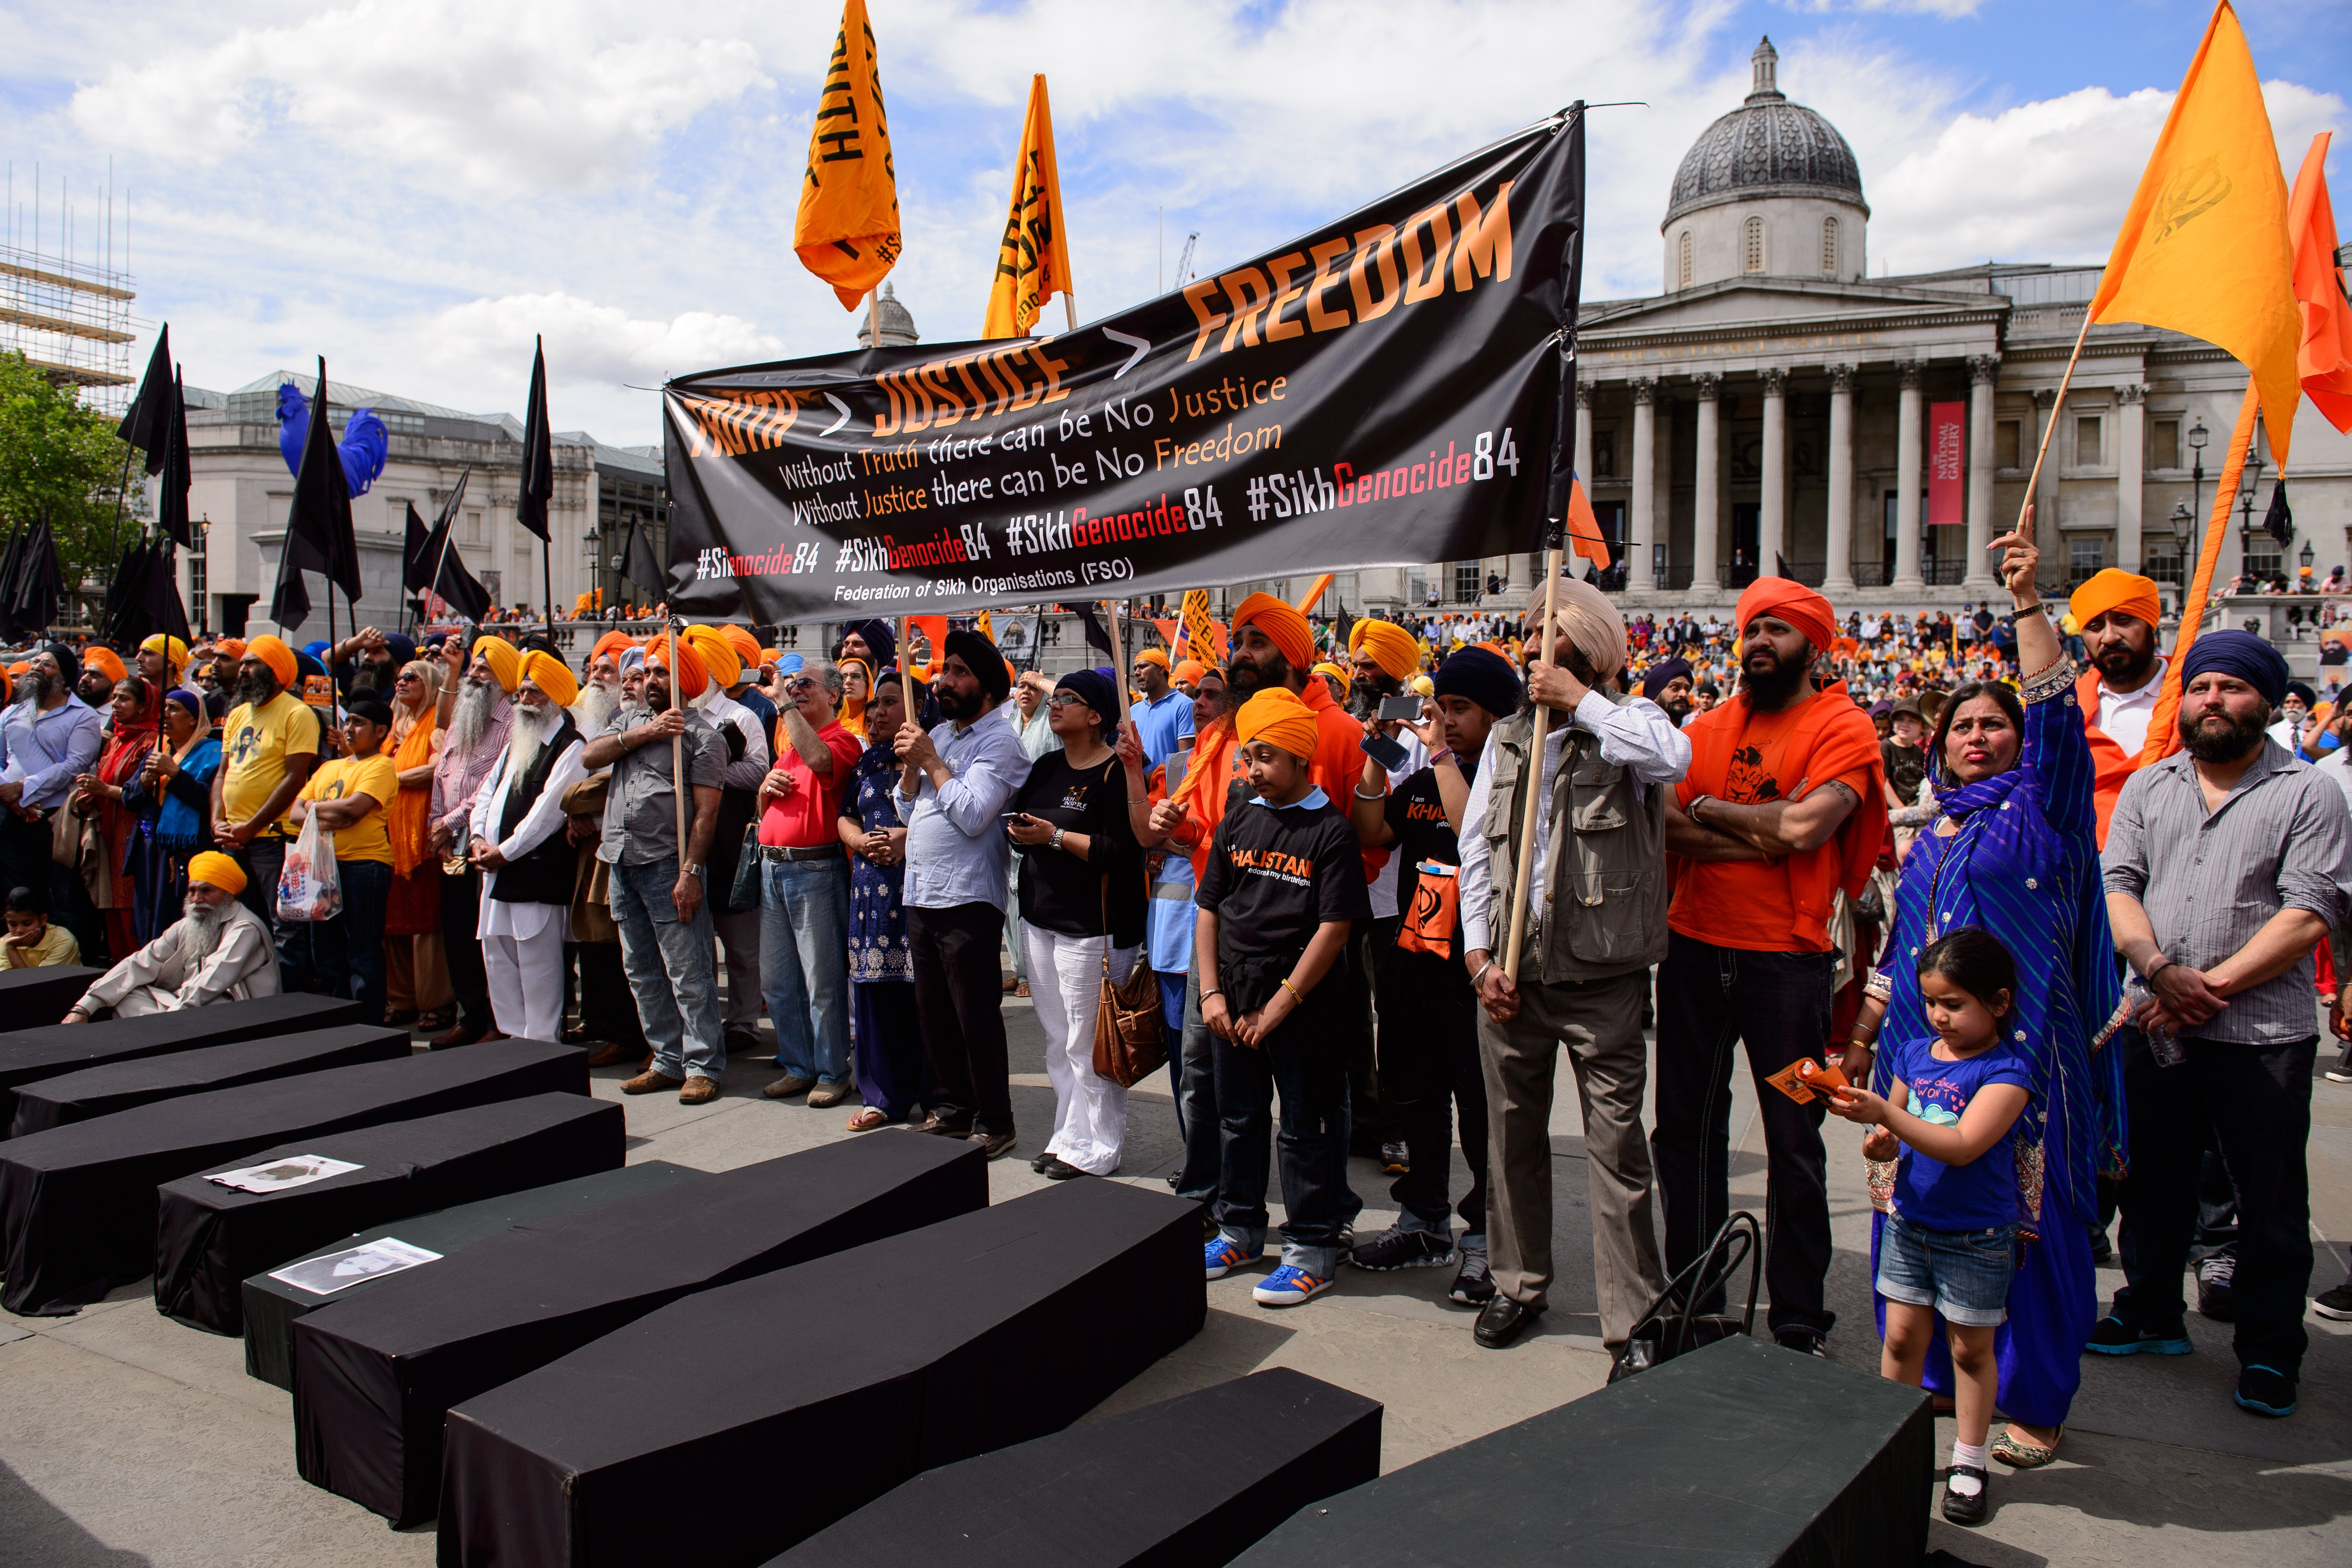 Members of the Sikh community hold aloft a banner calling for the 1984 storming of Sikhism's holiest shrine, the Golden Temple in Amritsar, by Indian troops, to be recognised as genocide as they join a demonstration in central London on June 8, 2014, to mark the 30th anniversary of the assault known as Operation Blue Star.